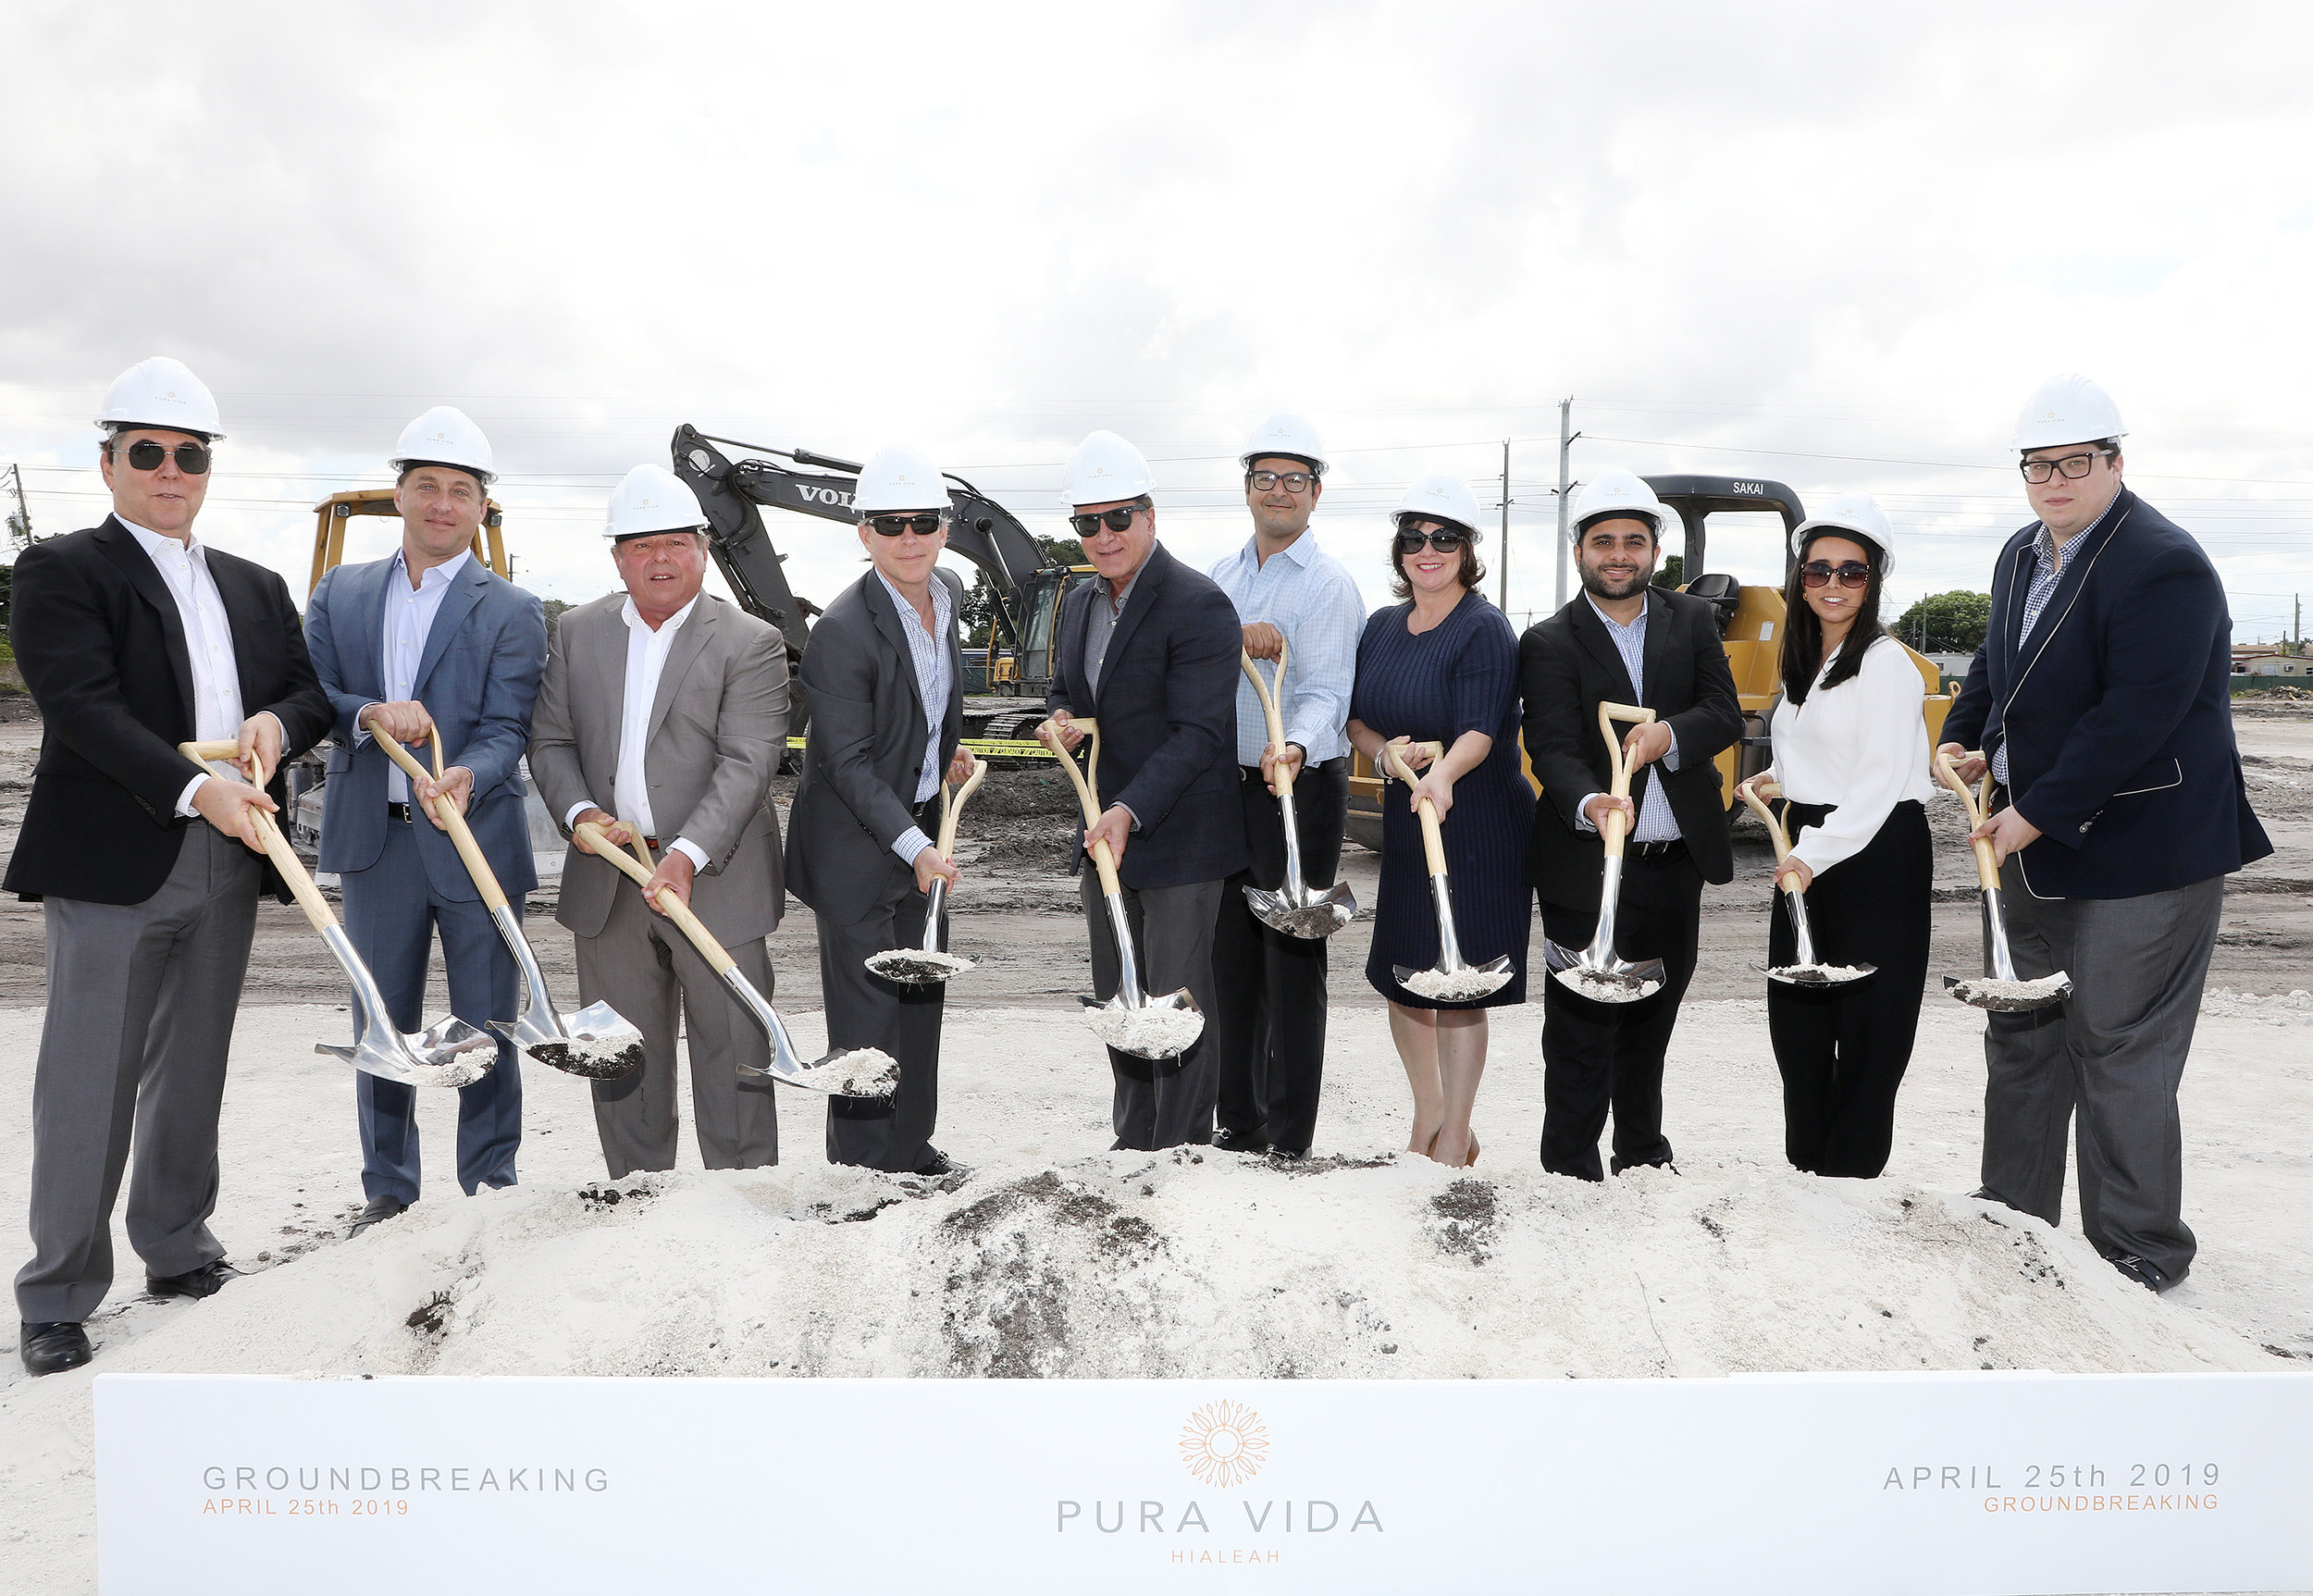 From L-R: Stephen A. Blumenthal, Principal of Coral Rock Development Group; David Brown, Principal of Coral Rock Development Group; Michael Wohl, Principal of Coral Rock Development Group; Victor Brown, Principal of Coral Rock Development Group; City of Hialeah Mayor Carlos Hernandez; Oscar Rodriguez, Arena Capital Holdings; Hialeah City Council President Vivian Casals-Munoz; City of Hialeah Councilman Paul Hernandez; Ana Rodriguez, Arena Capital Holdings; and Sebastian Roiter, Arena Capital Holdings